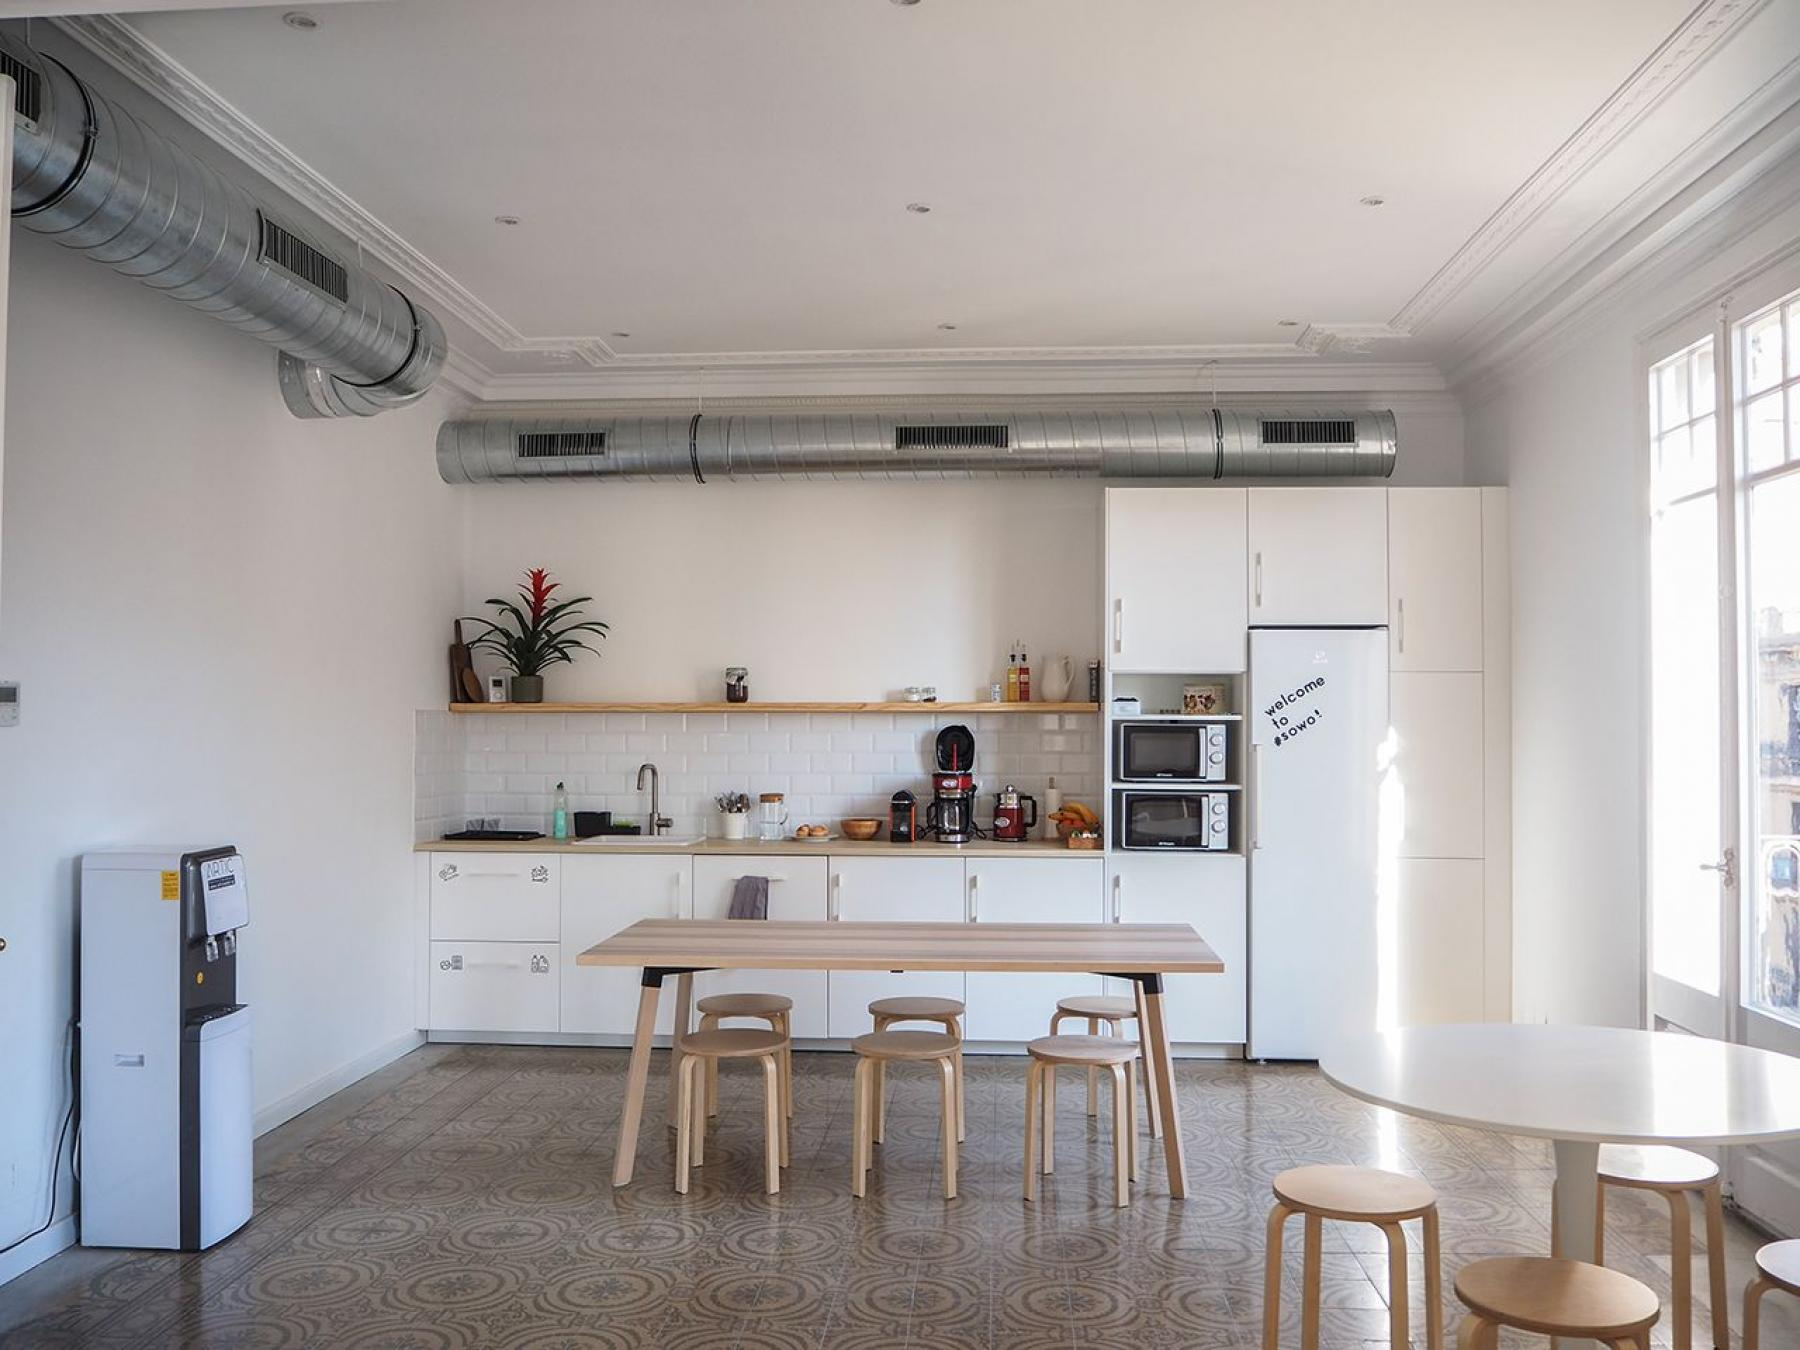 Rent office space Carrer del Consell de Cent 413, Barcelona (17)